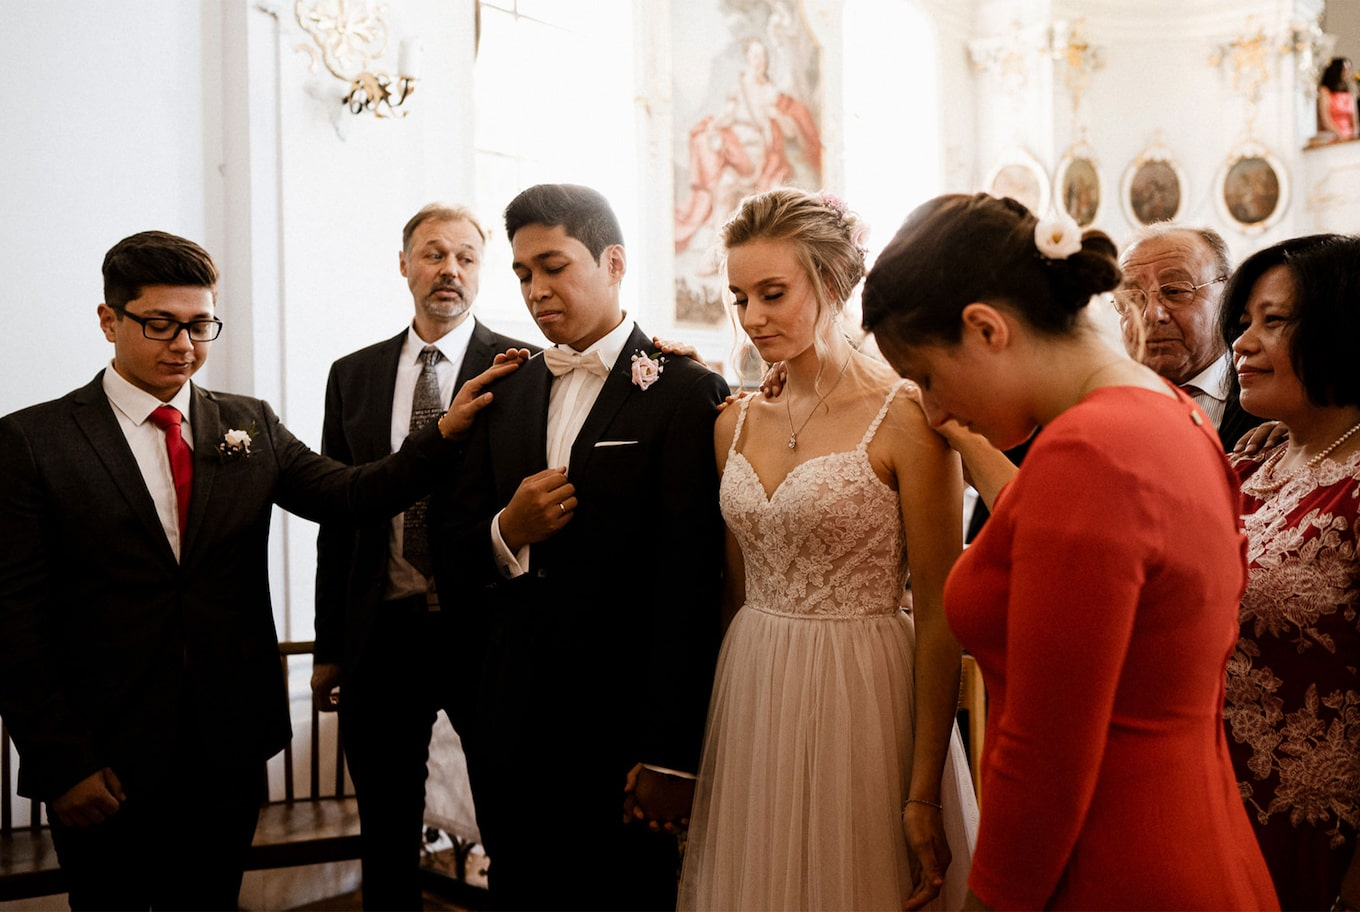 yannick zurfluh sony alpha 9 brides sharing touching moment with their families